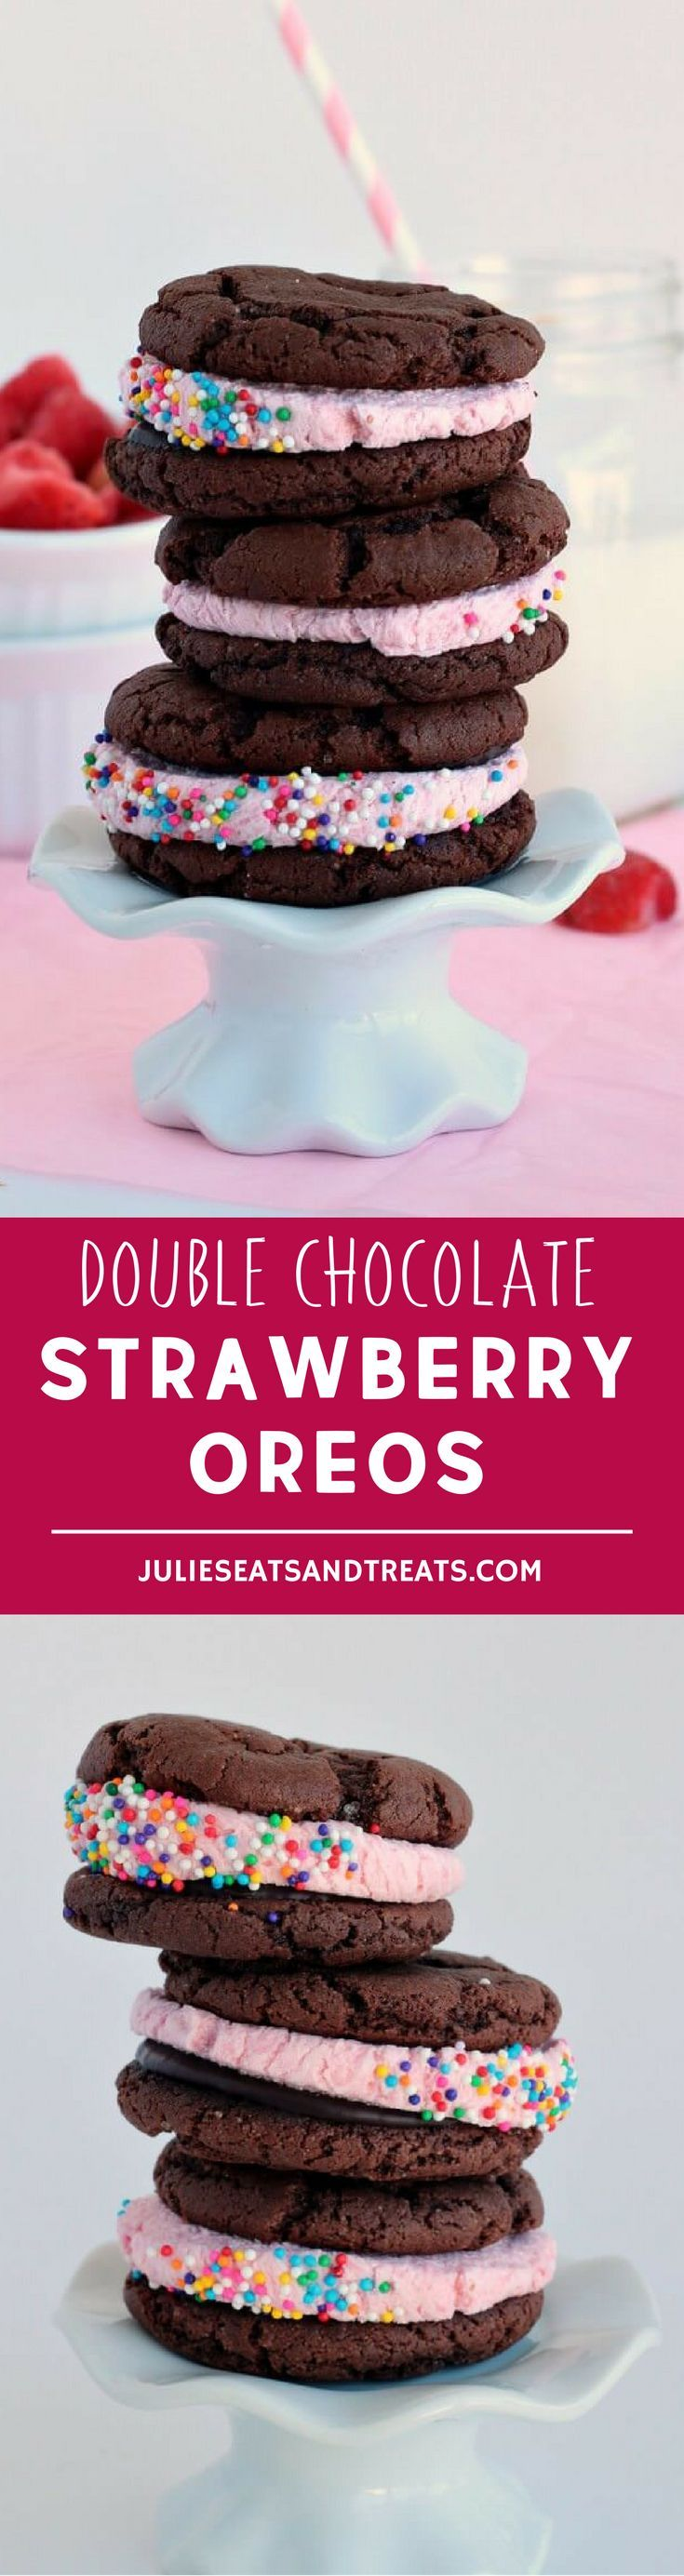 Double Chocolate Strawberry Oreos – super easy cake mix cookies filled with strawberry chocolate ganache and strawberry frosting. Perfect for Valentine's Day! More homemade and made from scratch recipes from @julieseats